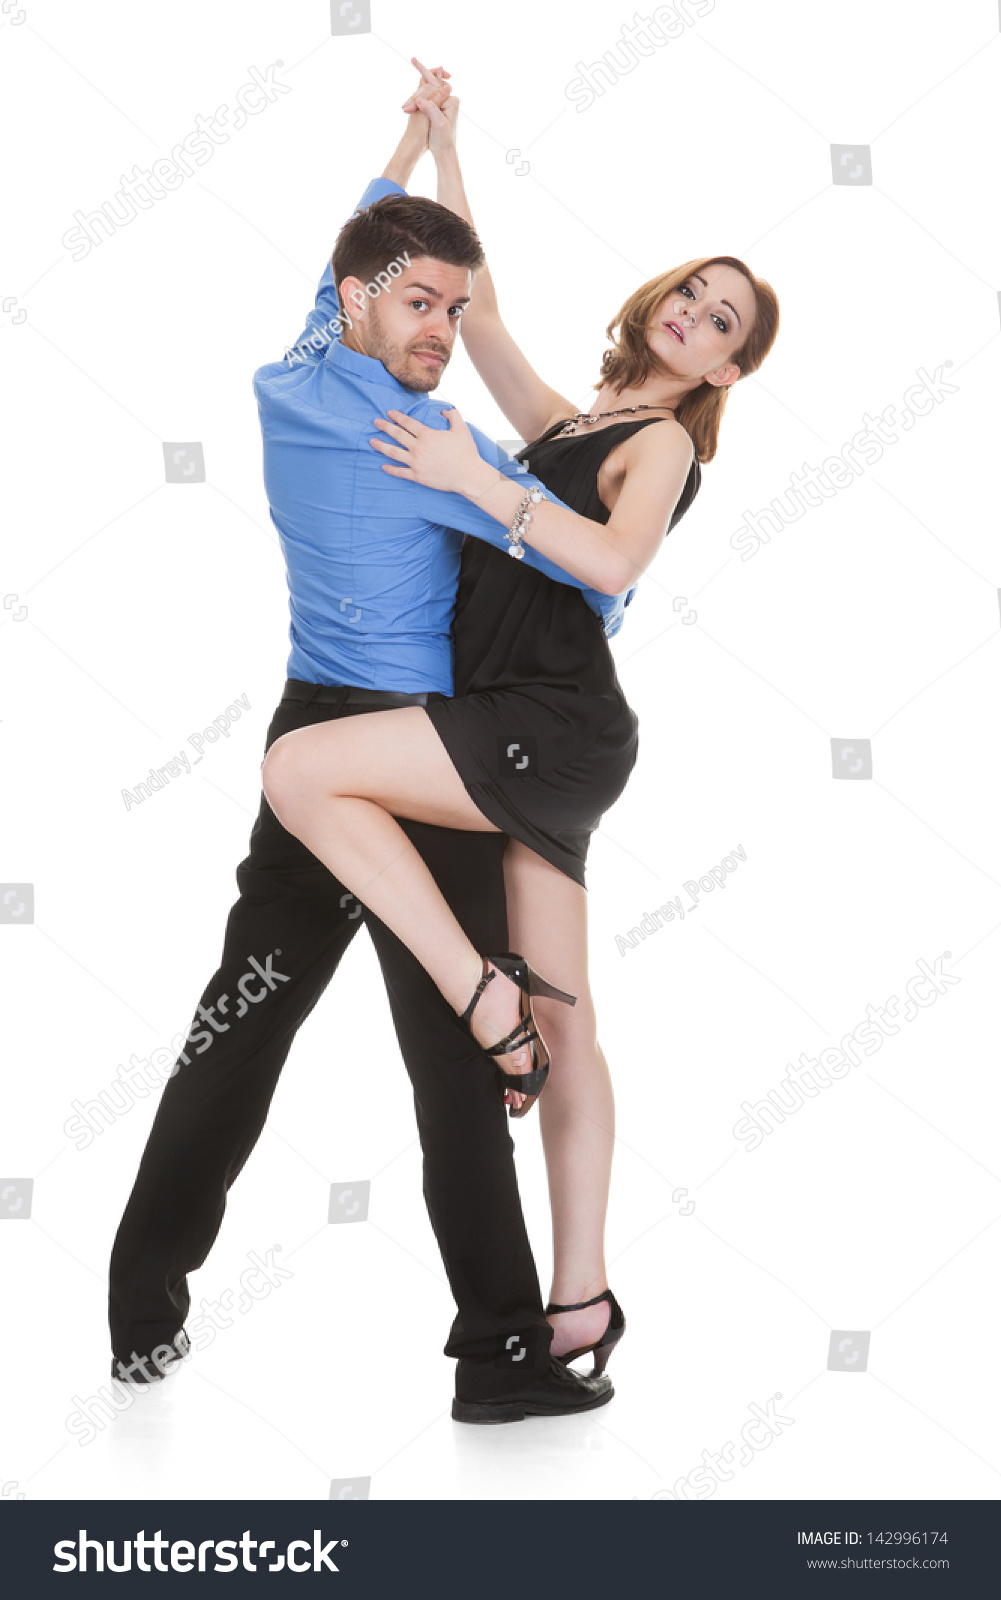 Stock Photo Elegant Young Couple Dancing On White Background